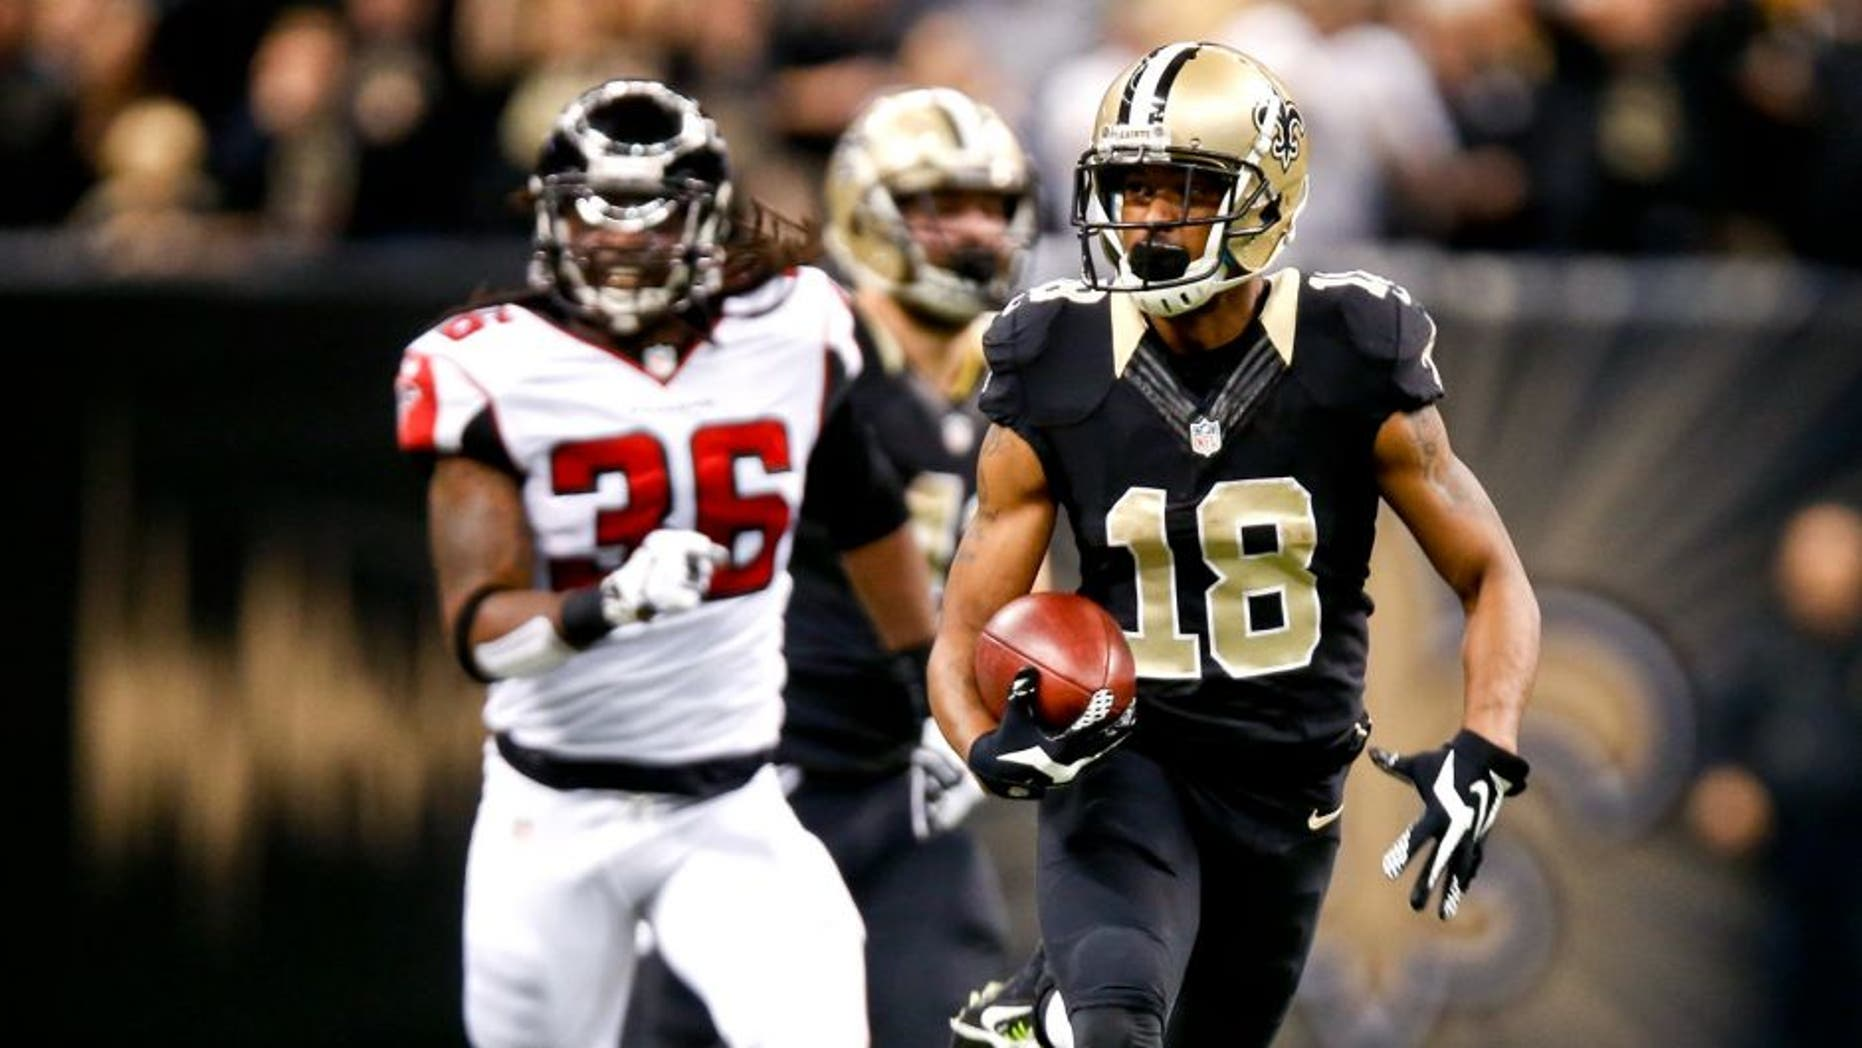 Dec 21, 2014; New Orleans, LA, USA; New Orleans Saints wide receiver Jalen Saunders (18) returns the opening kickoff as Atlanta Falcons strong safety Kemal Ishmael (36) chases during the first quarter at the Mercedes-Benz Superdome. Mandatory Credit: Derick E. Hingle-USA TODAY Sports